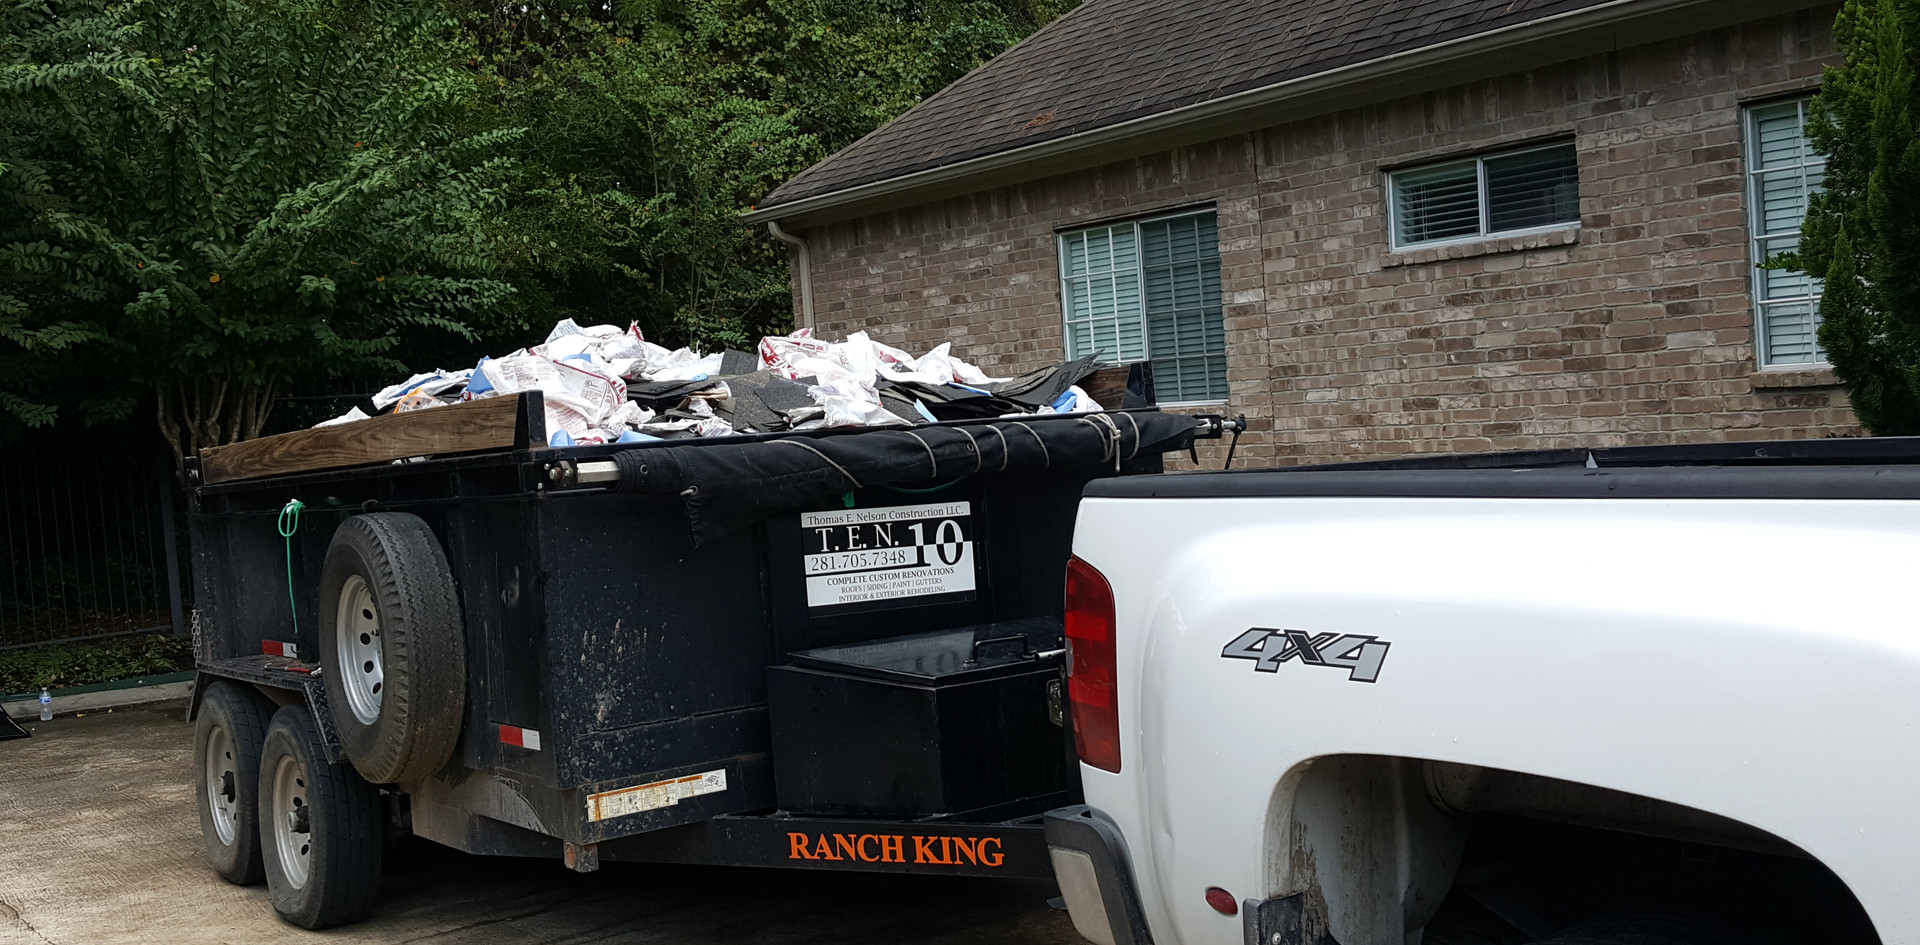 We haul away the debris and always clean up thoroughly and run magnets around the property.